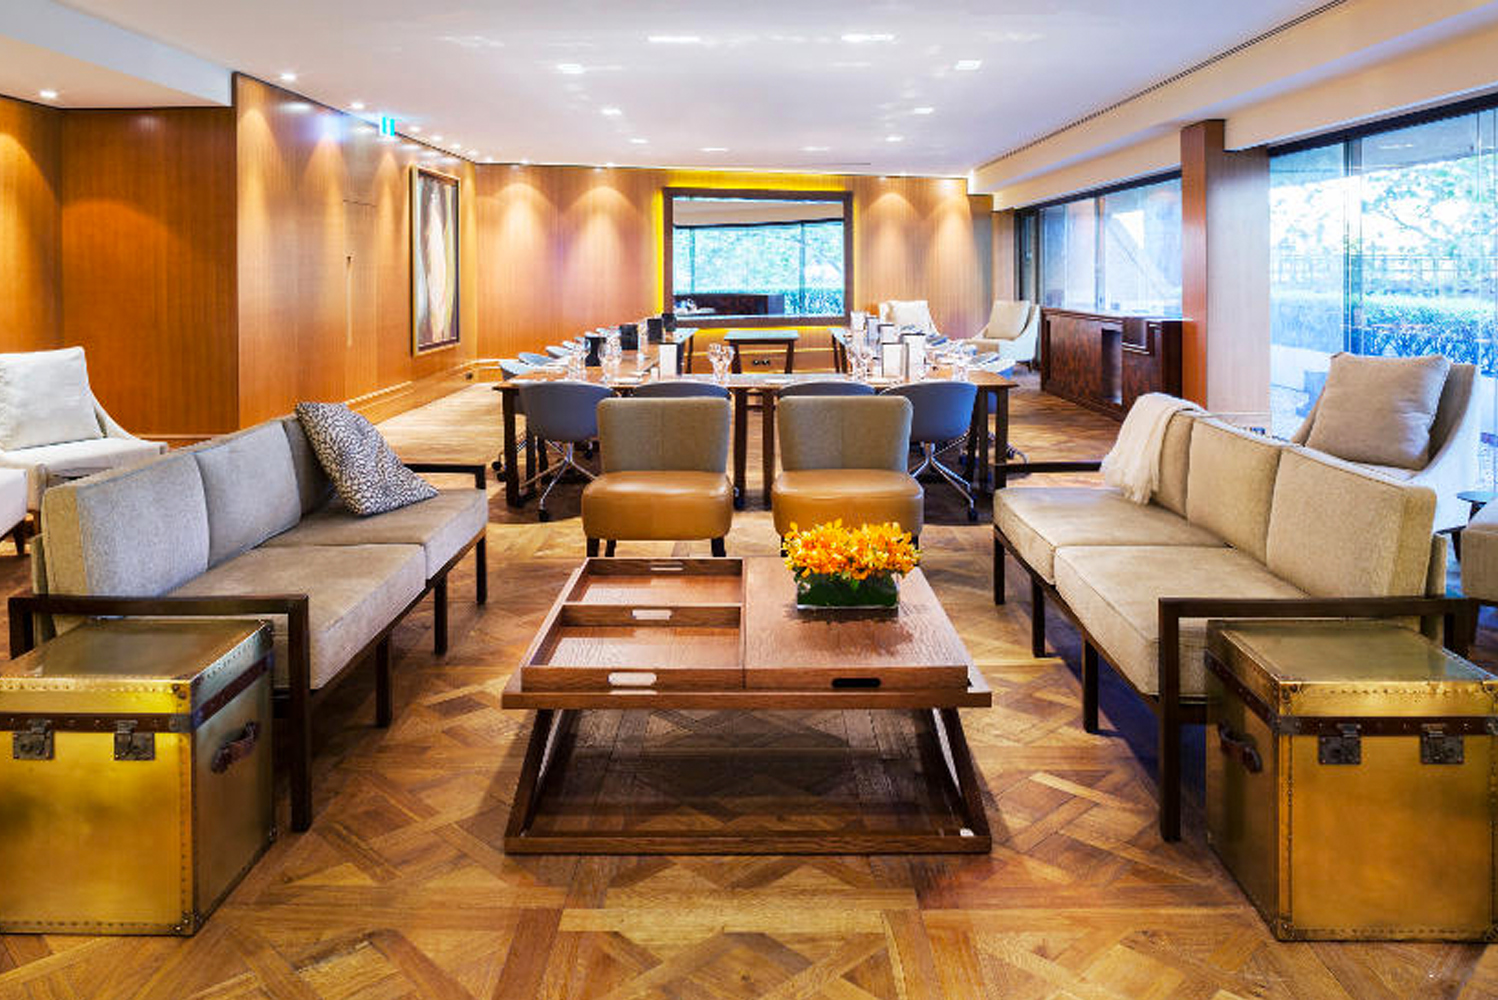 The hardwood flooring pattern is ideal for use in living rooms, restaurants and hotel lobbies.